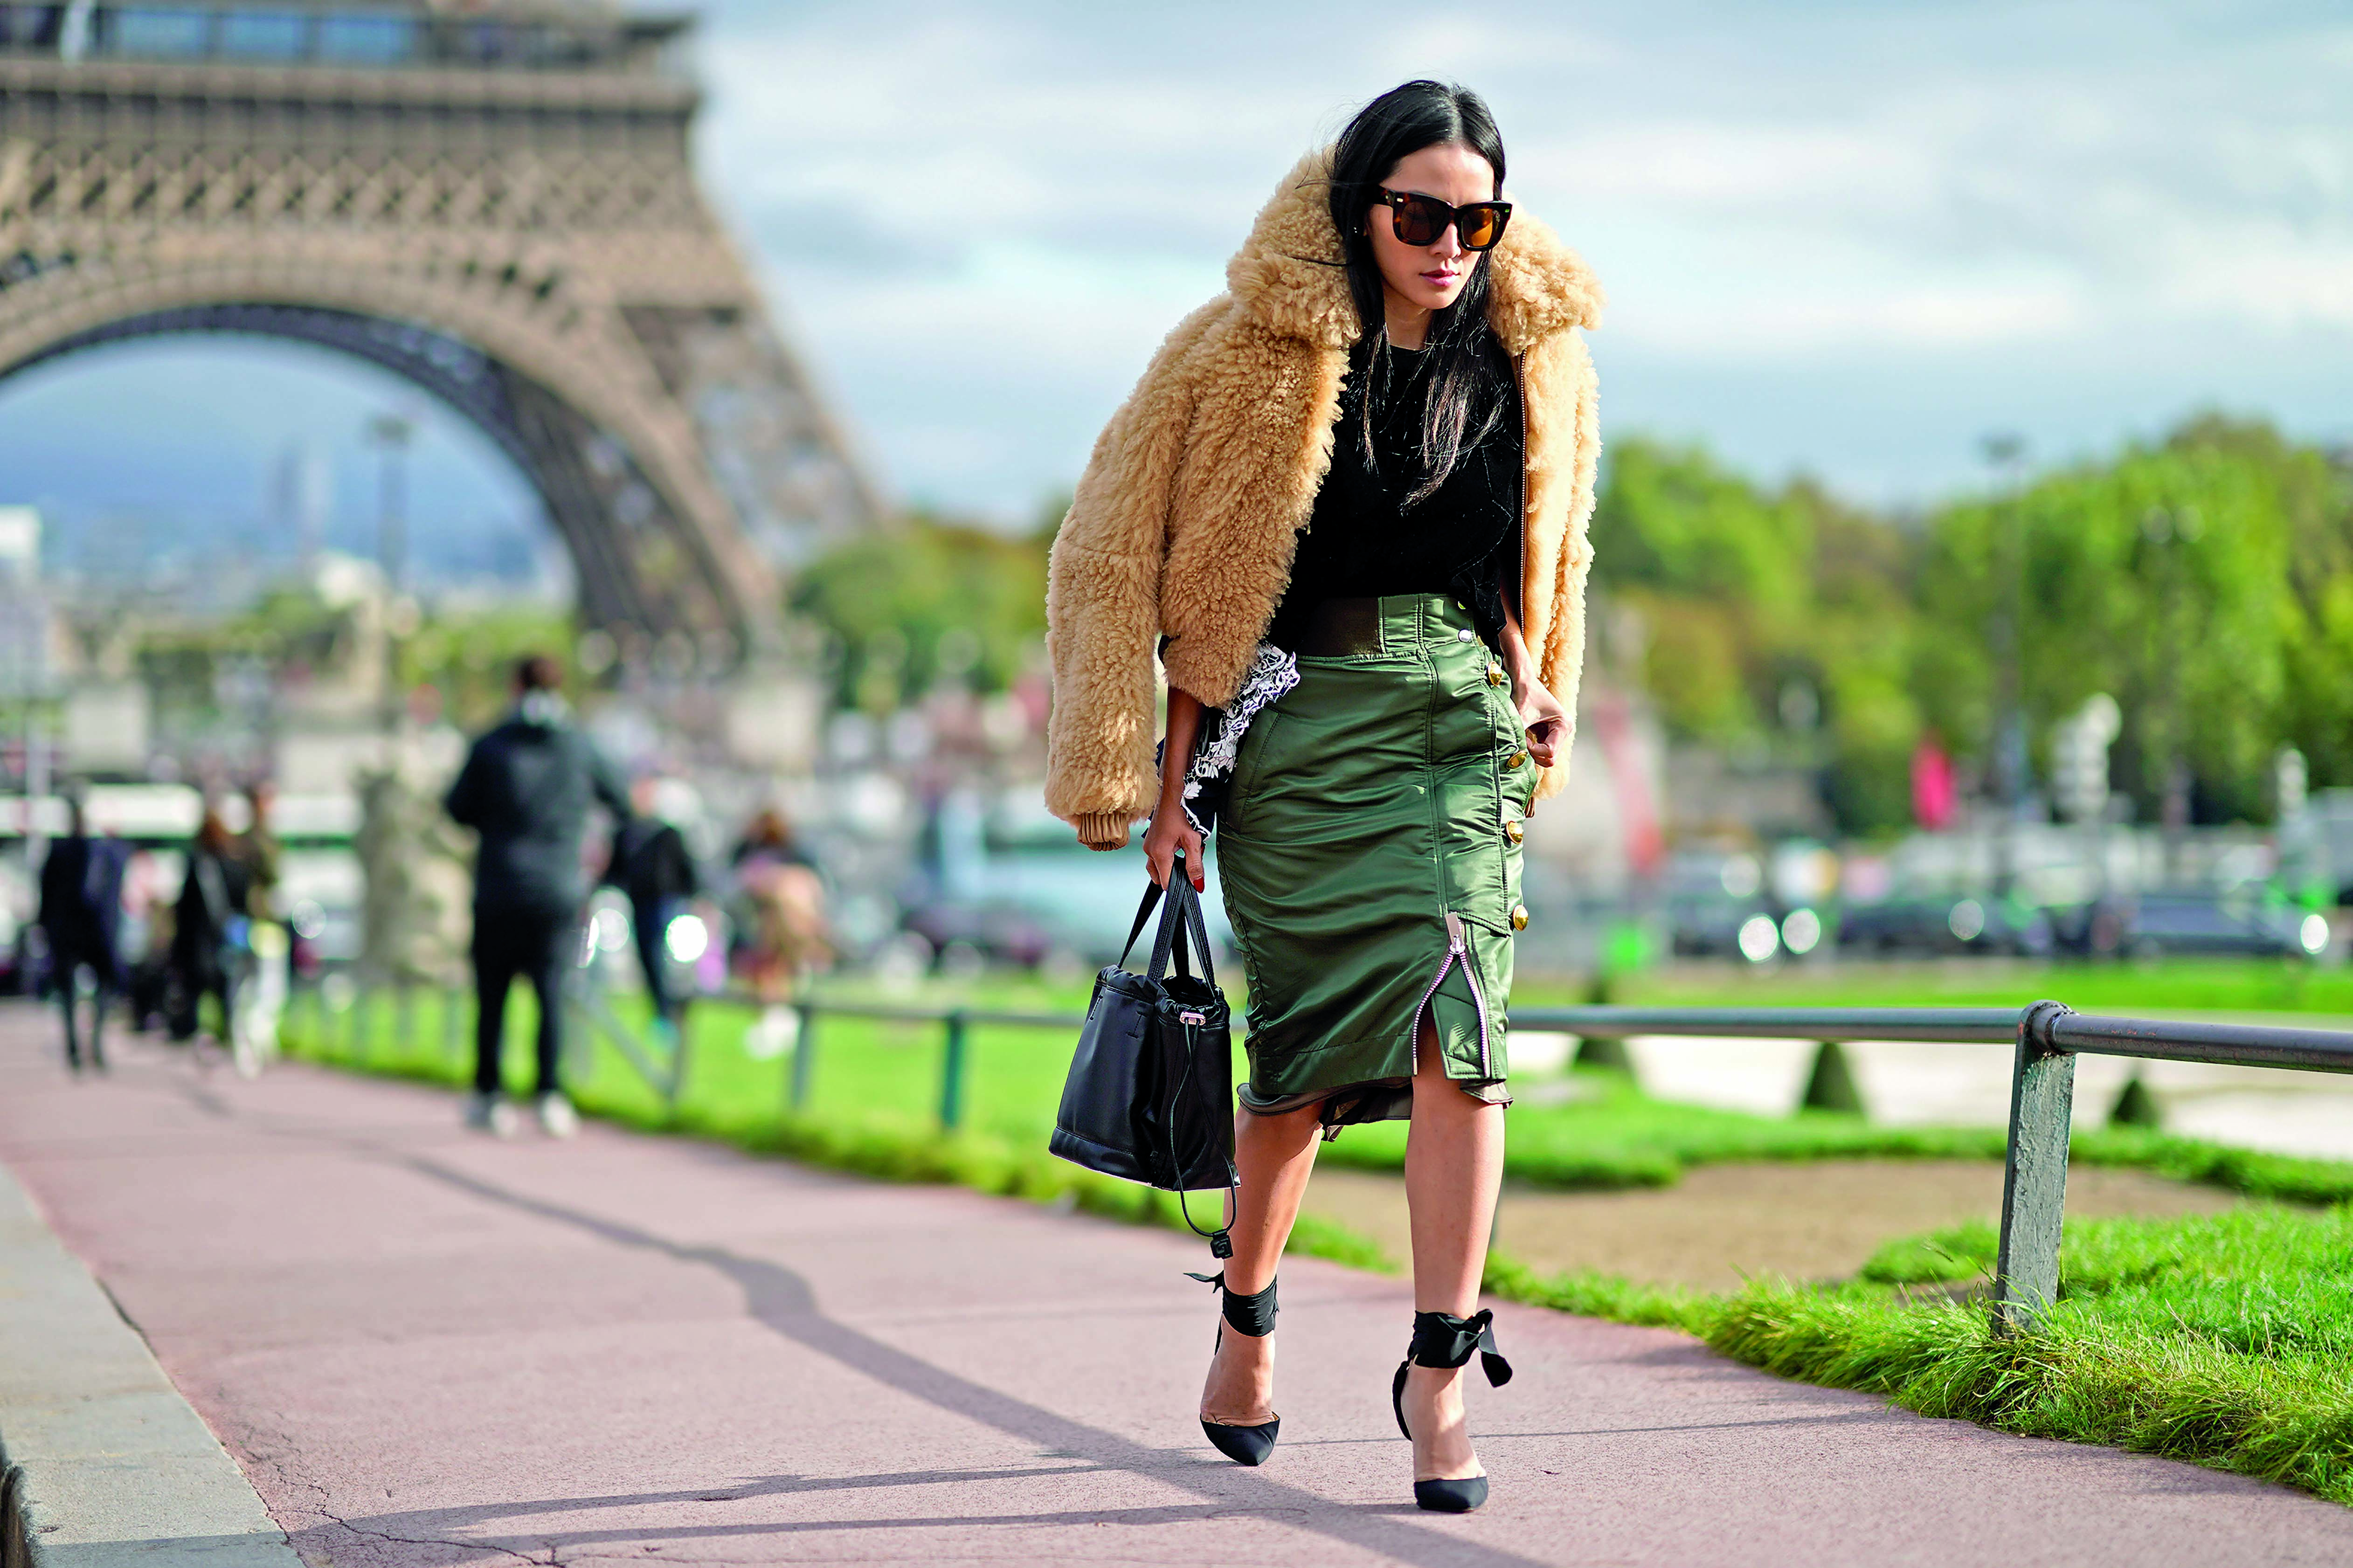 PARIS, FRANCE - OCTOBER 02:  Tina Leung wears a fur coat, a black top, a green skirt, outside Hermes, during Paris Fashion Week Womenswear Spring/Summer 2018, on October 2, 2017 in Paris, France.  (Photo by Edward Berthelot/Getty Images)